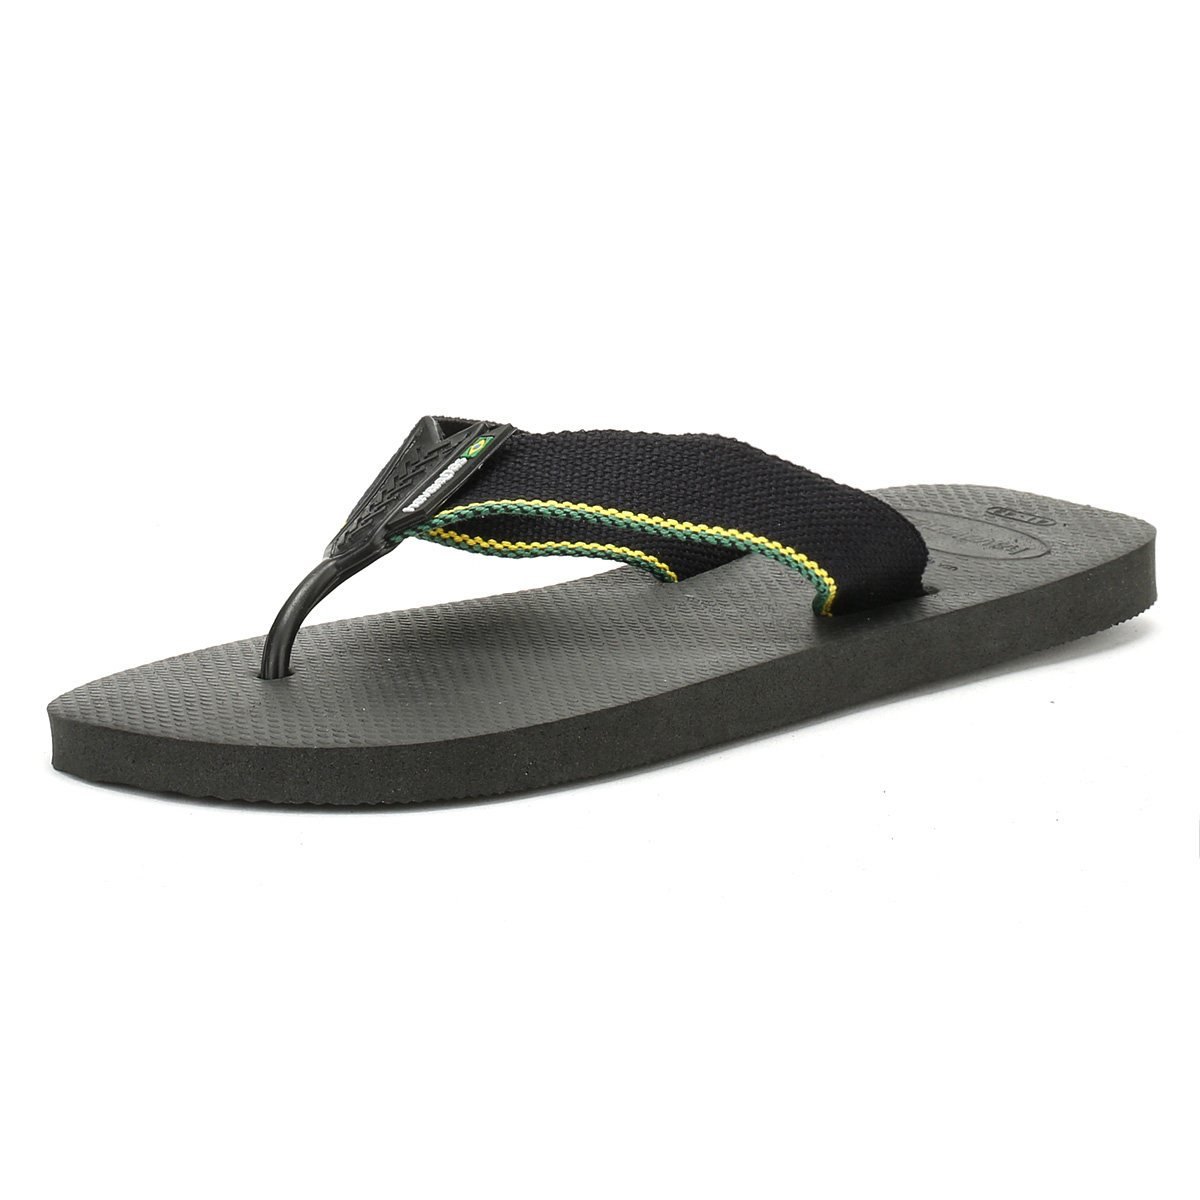 507c936bbf0f Details about Havaianas Mens Black Urban Brasil Flip Flops Beach Summer  Thong Shoes